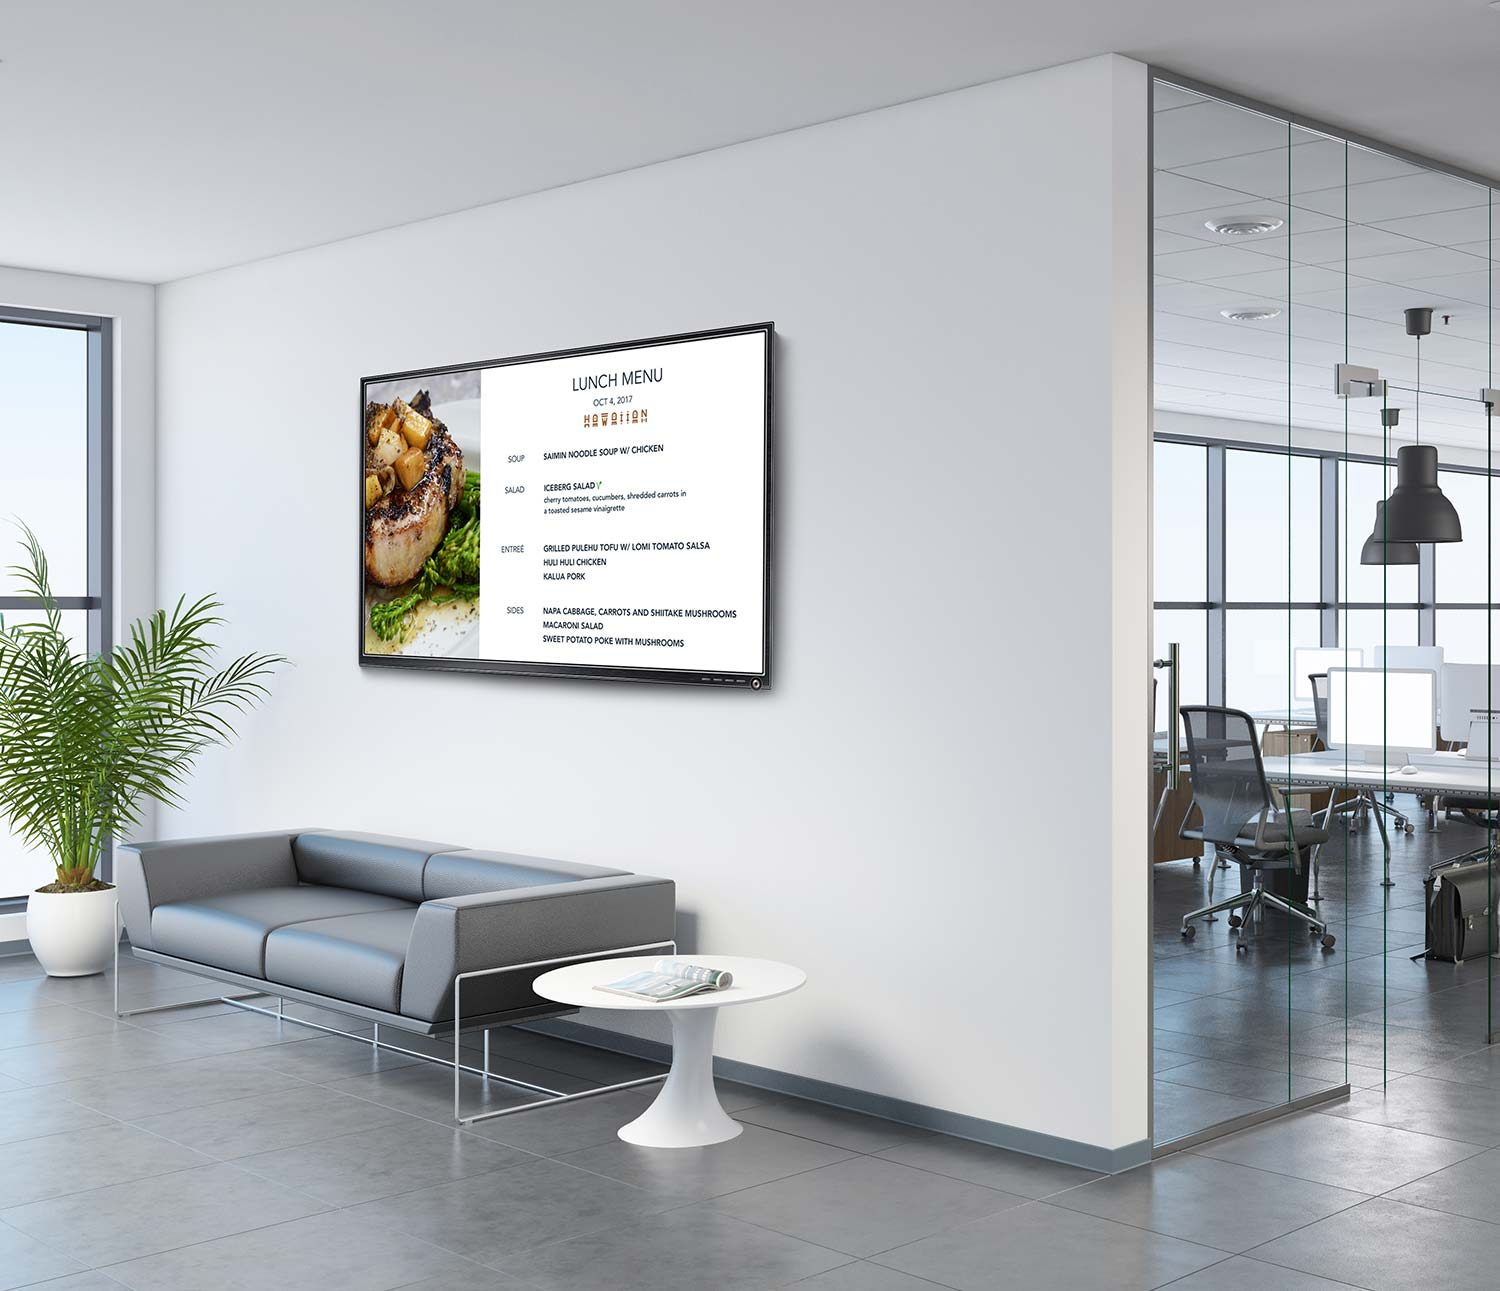 digital signage screen in office